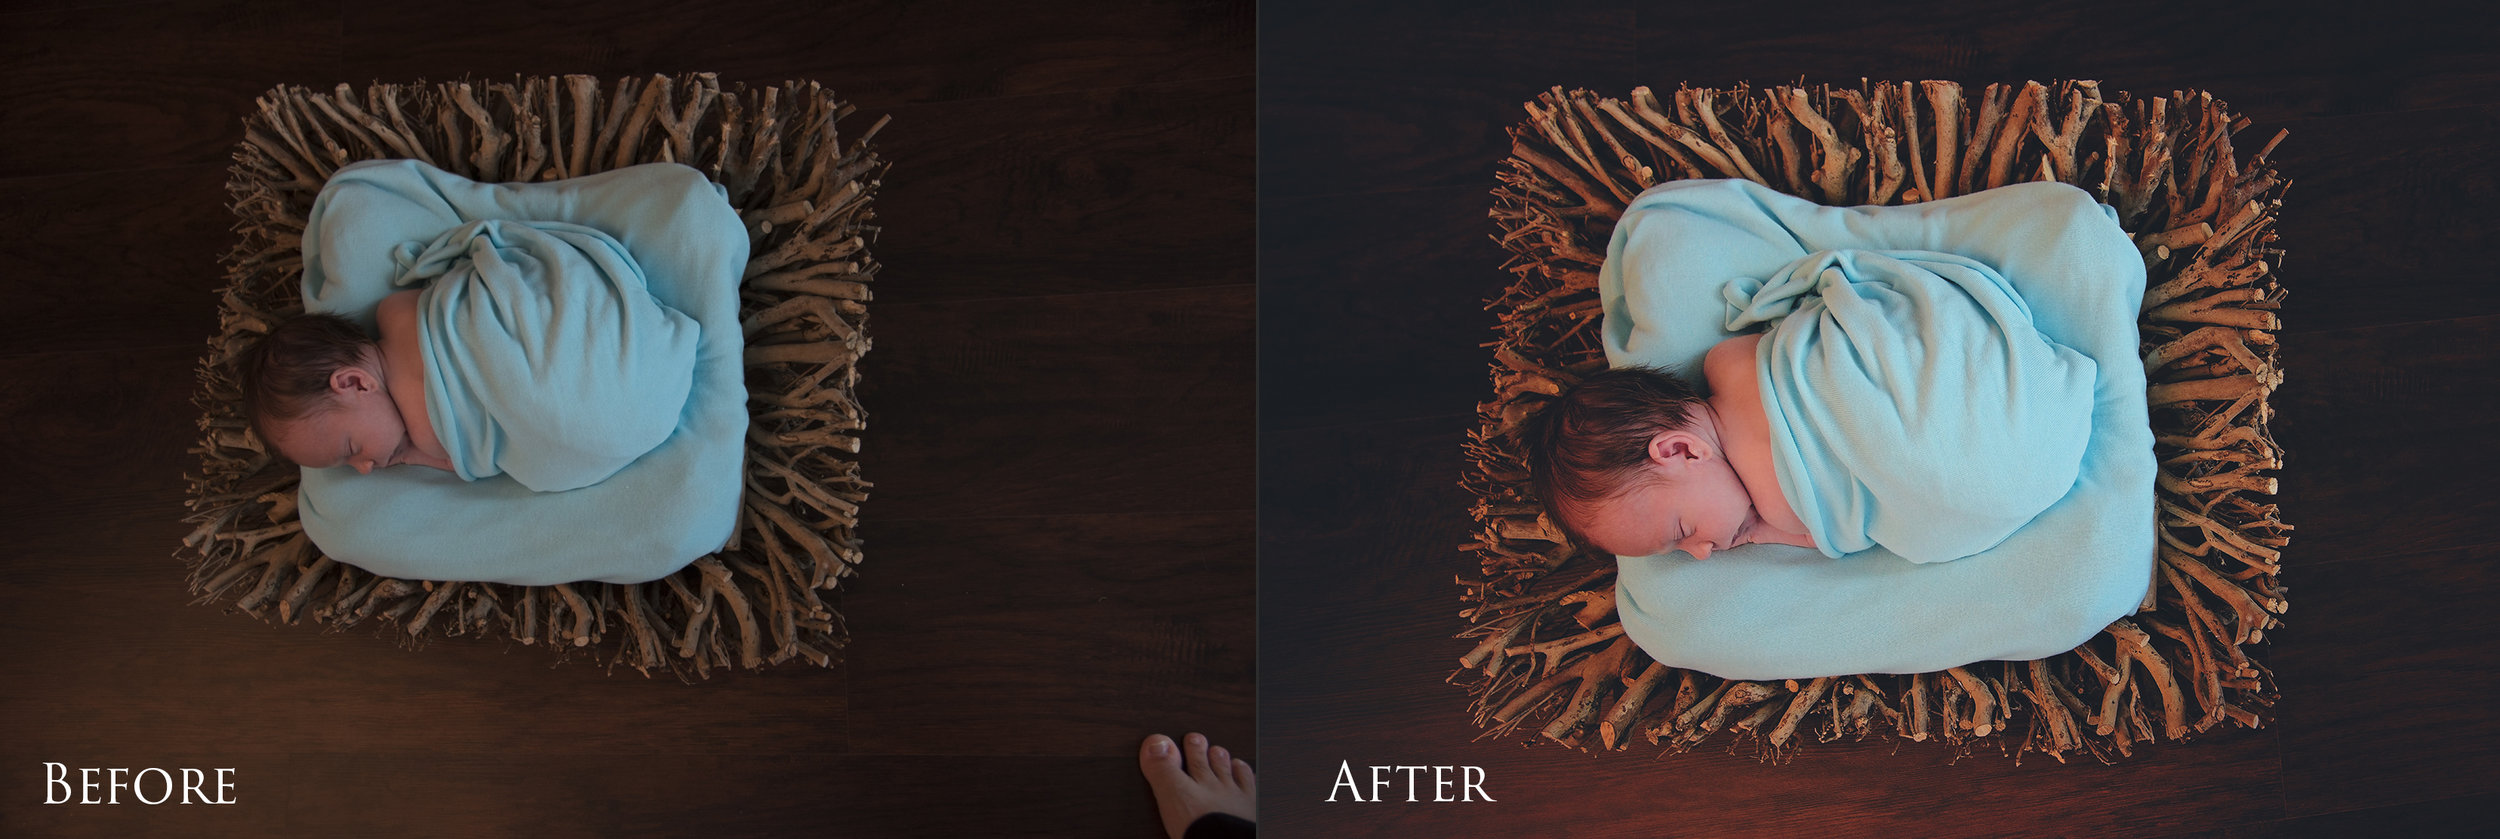 Newborn Photoshop Before & After. Yes, that is my foot in the original!